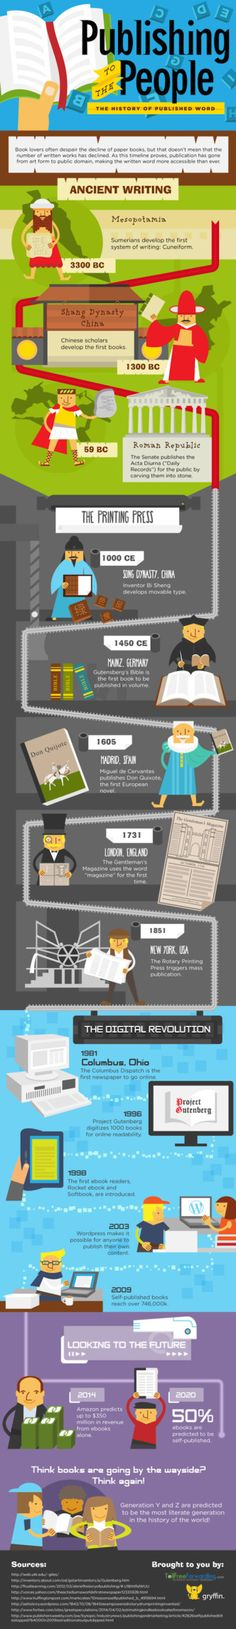 The timeline of published word (infographic)